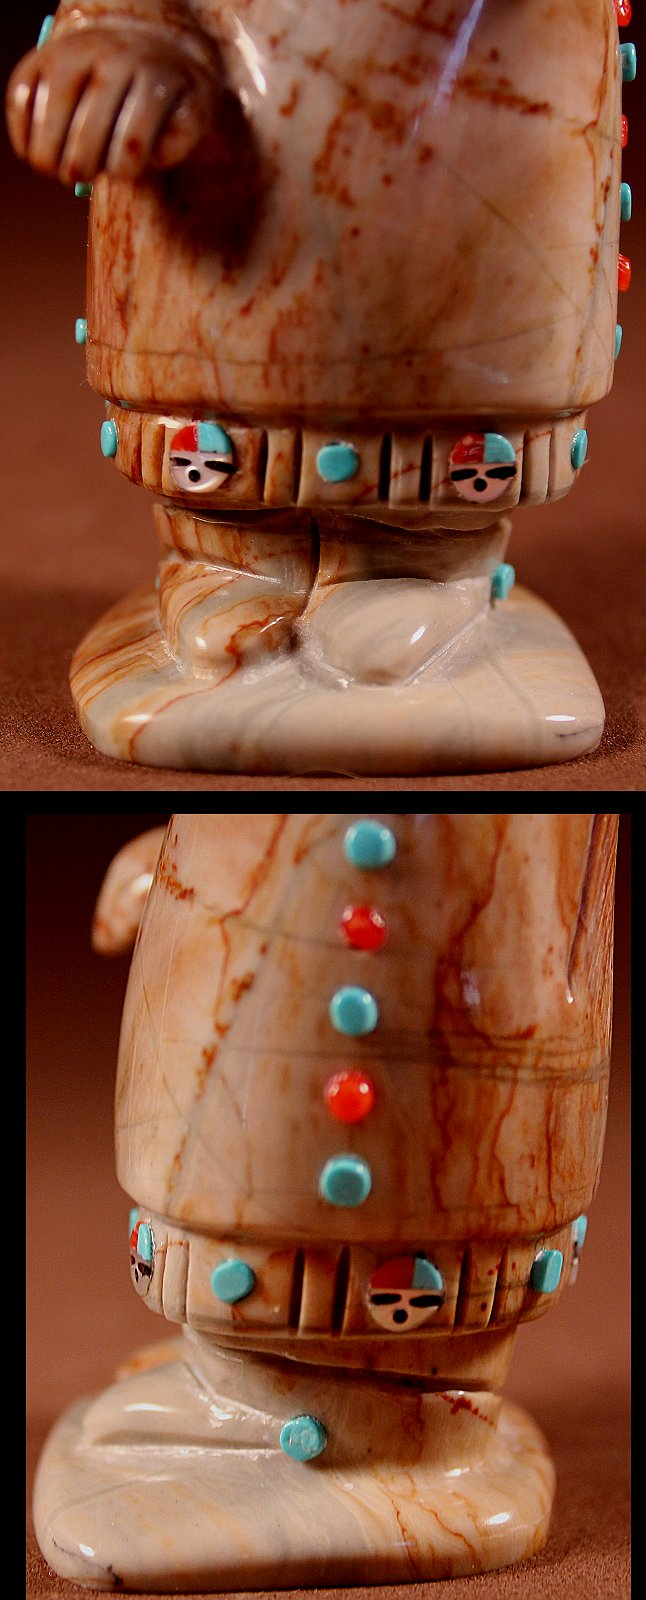 Randy Luciois just one of the talented artisans whose work you'll find often at Zuni Spirits!